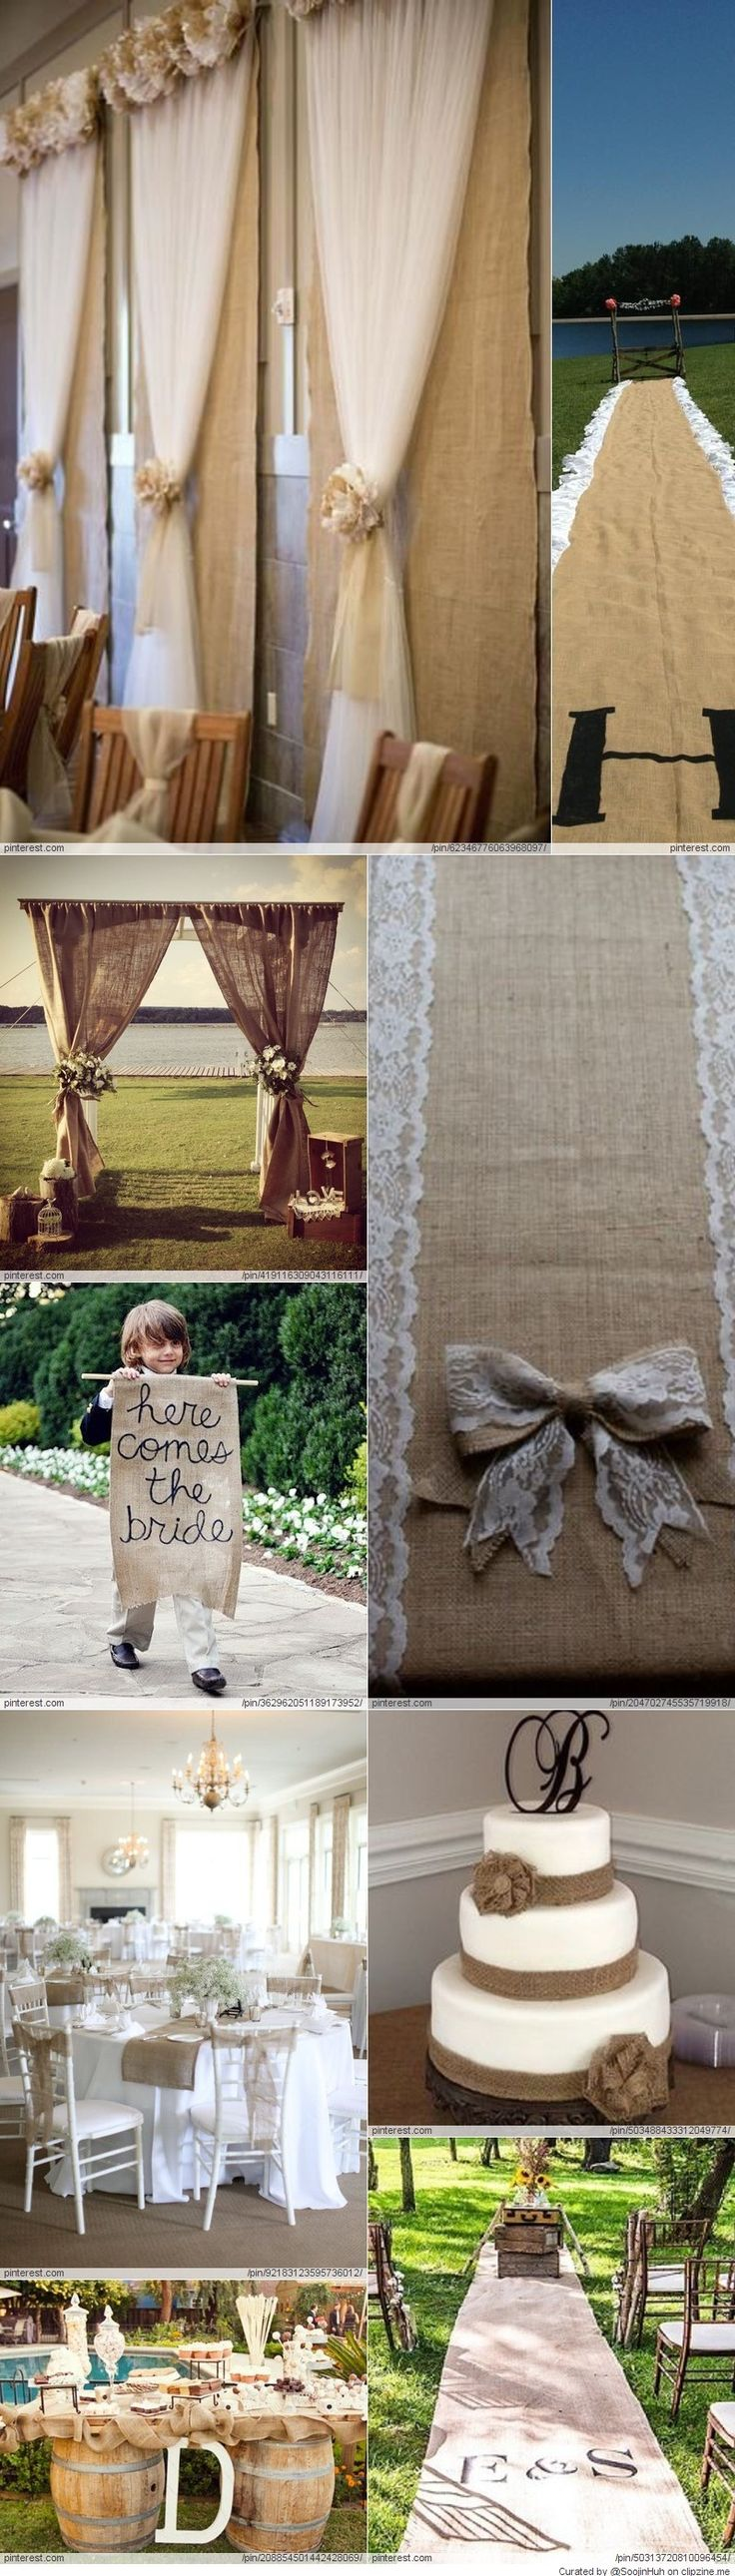 Burlap Wedding Ideas. Cute details